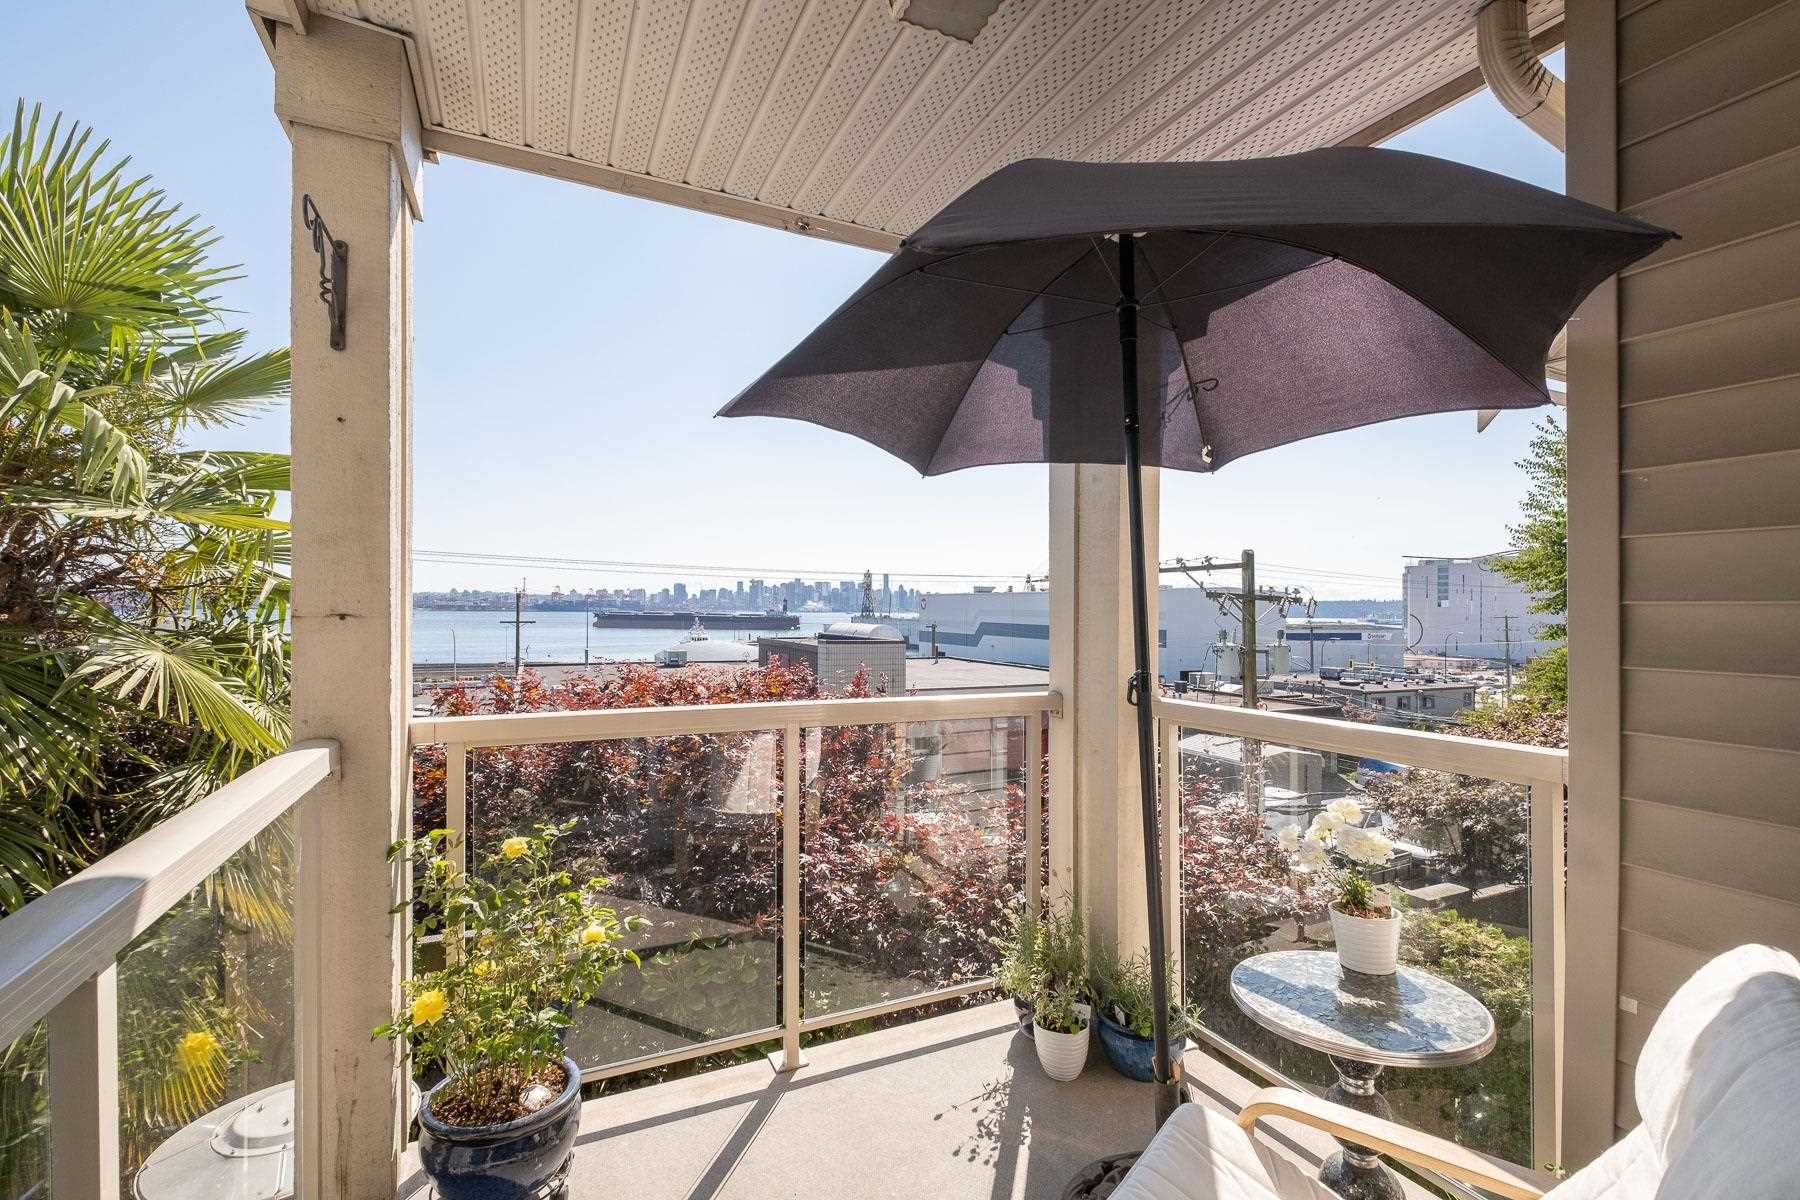 205 333 E 1ST STREET - Lower Lonsdale Apartment/Condo for sale, 1 Bedroom (R2618010) - #25